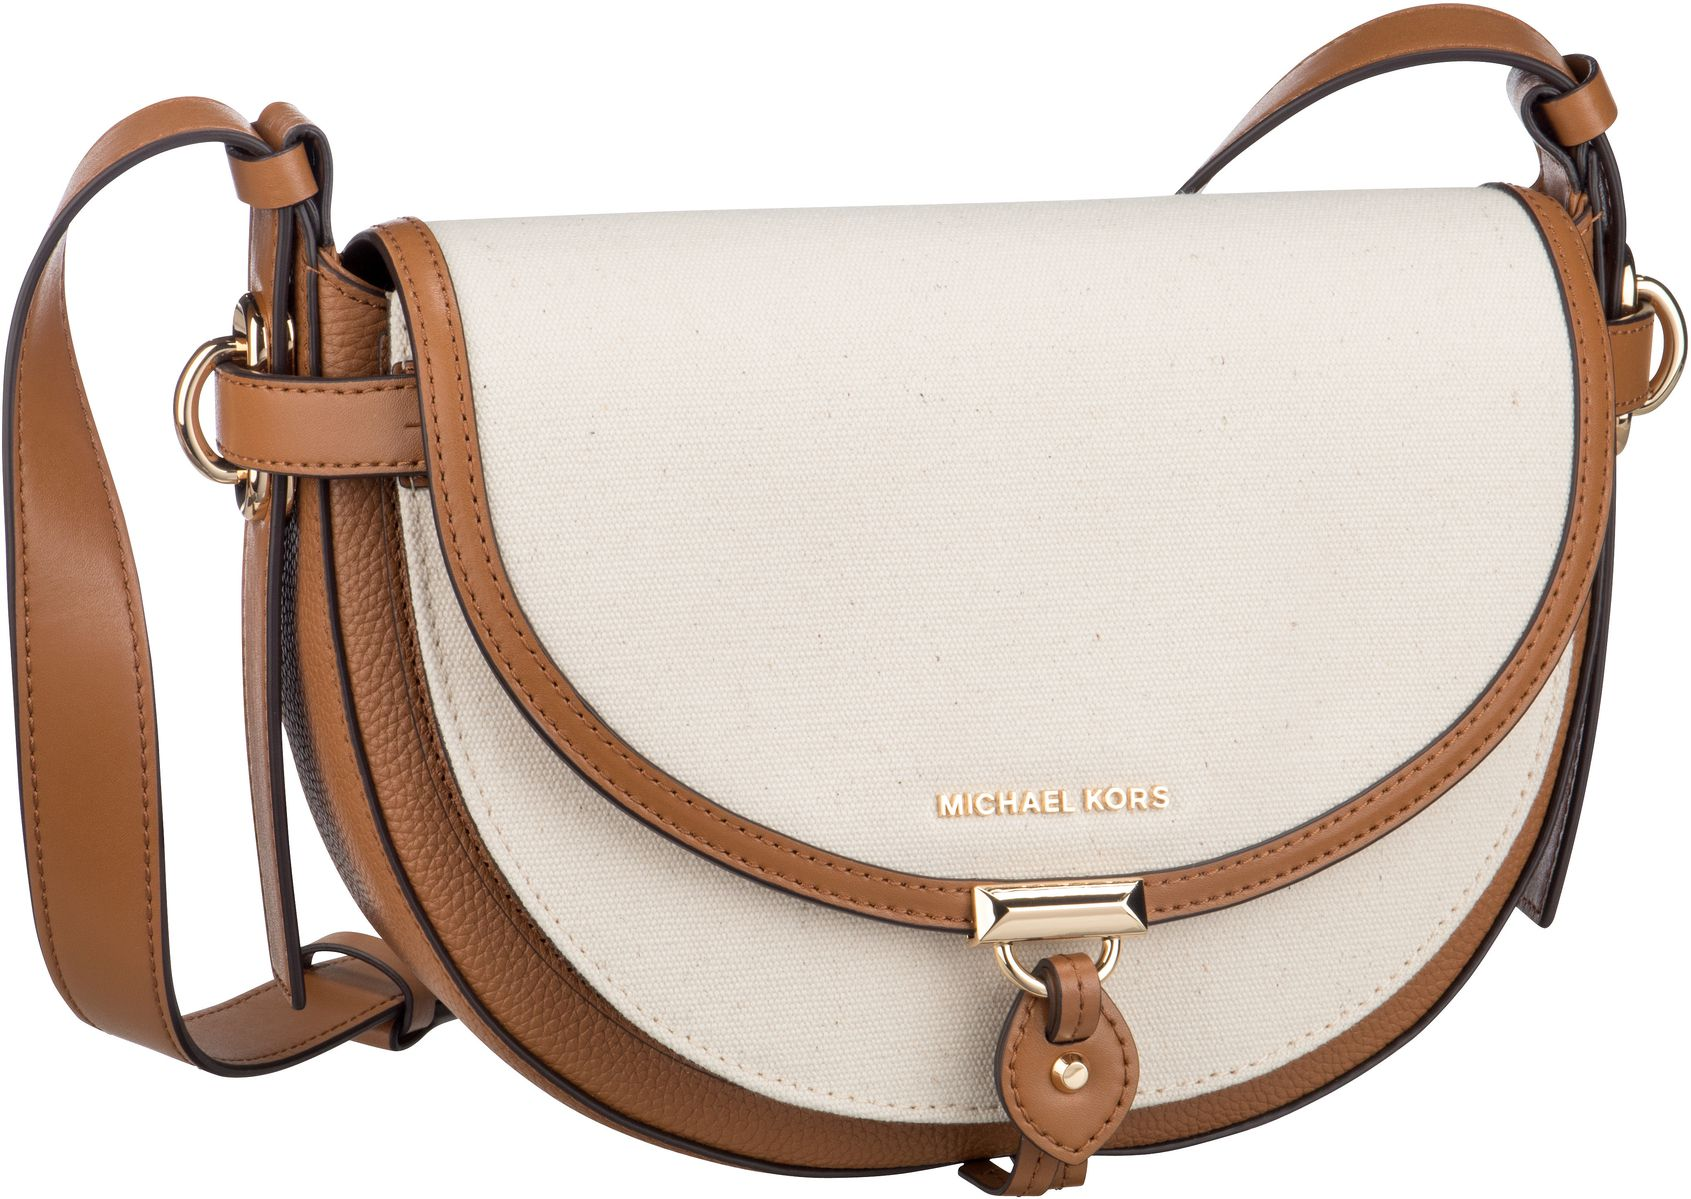 Michael Kors Umhängetasche Mara Medium Saddle Bag Canvas Natural